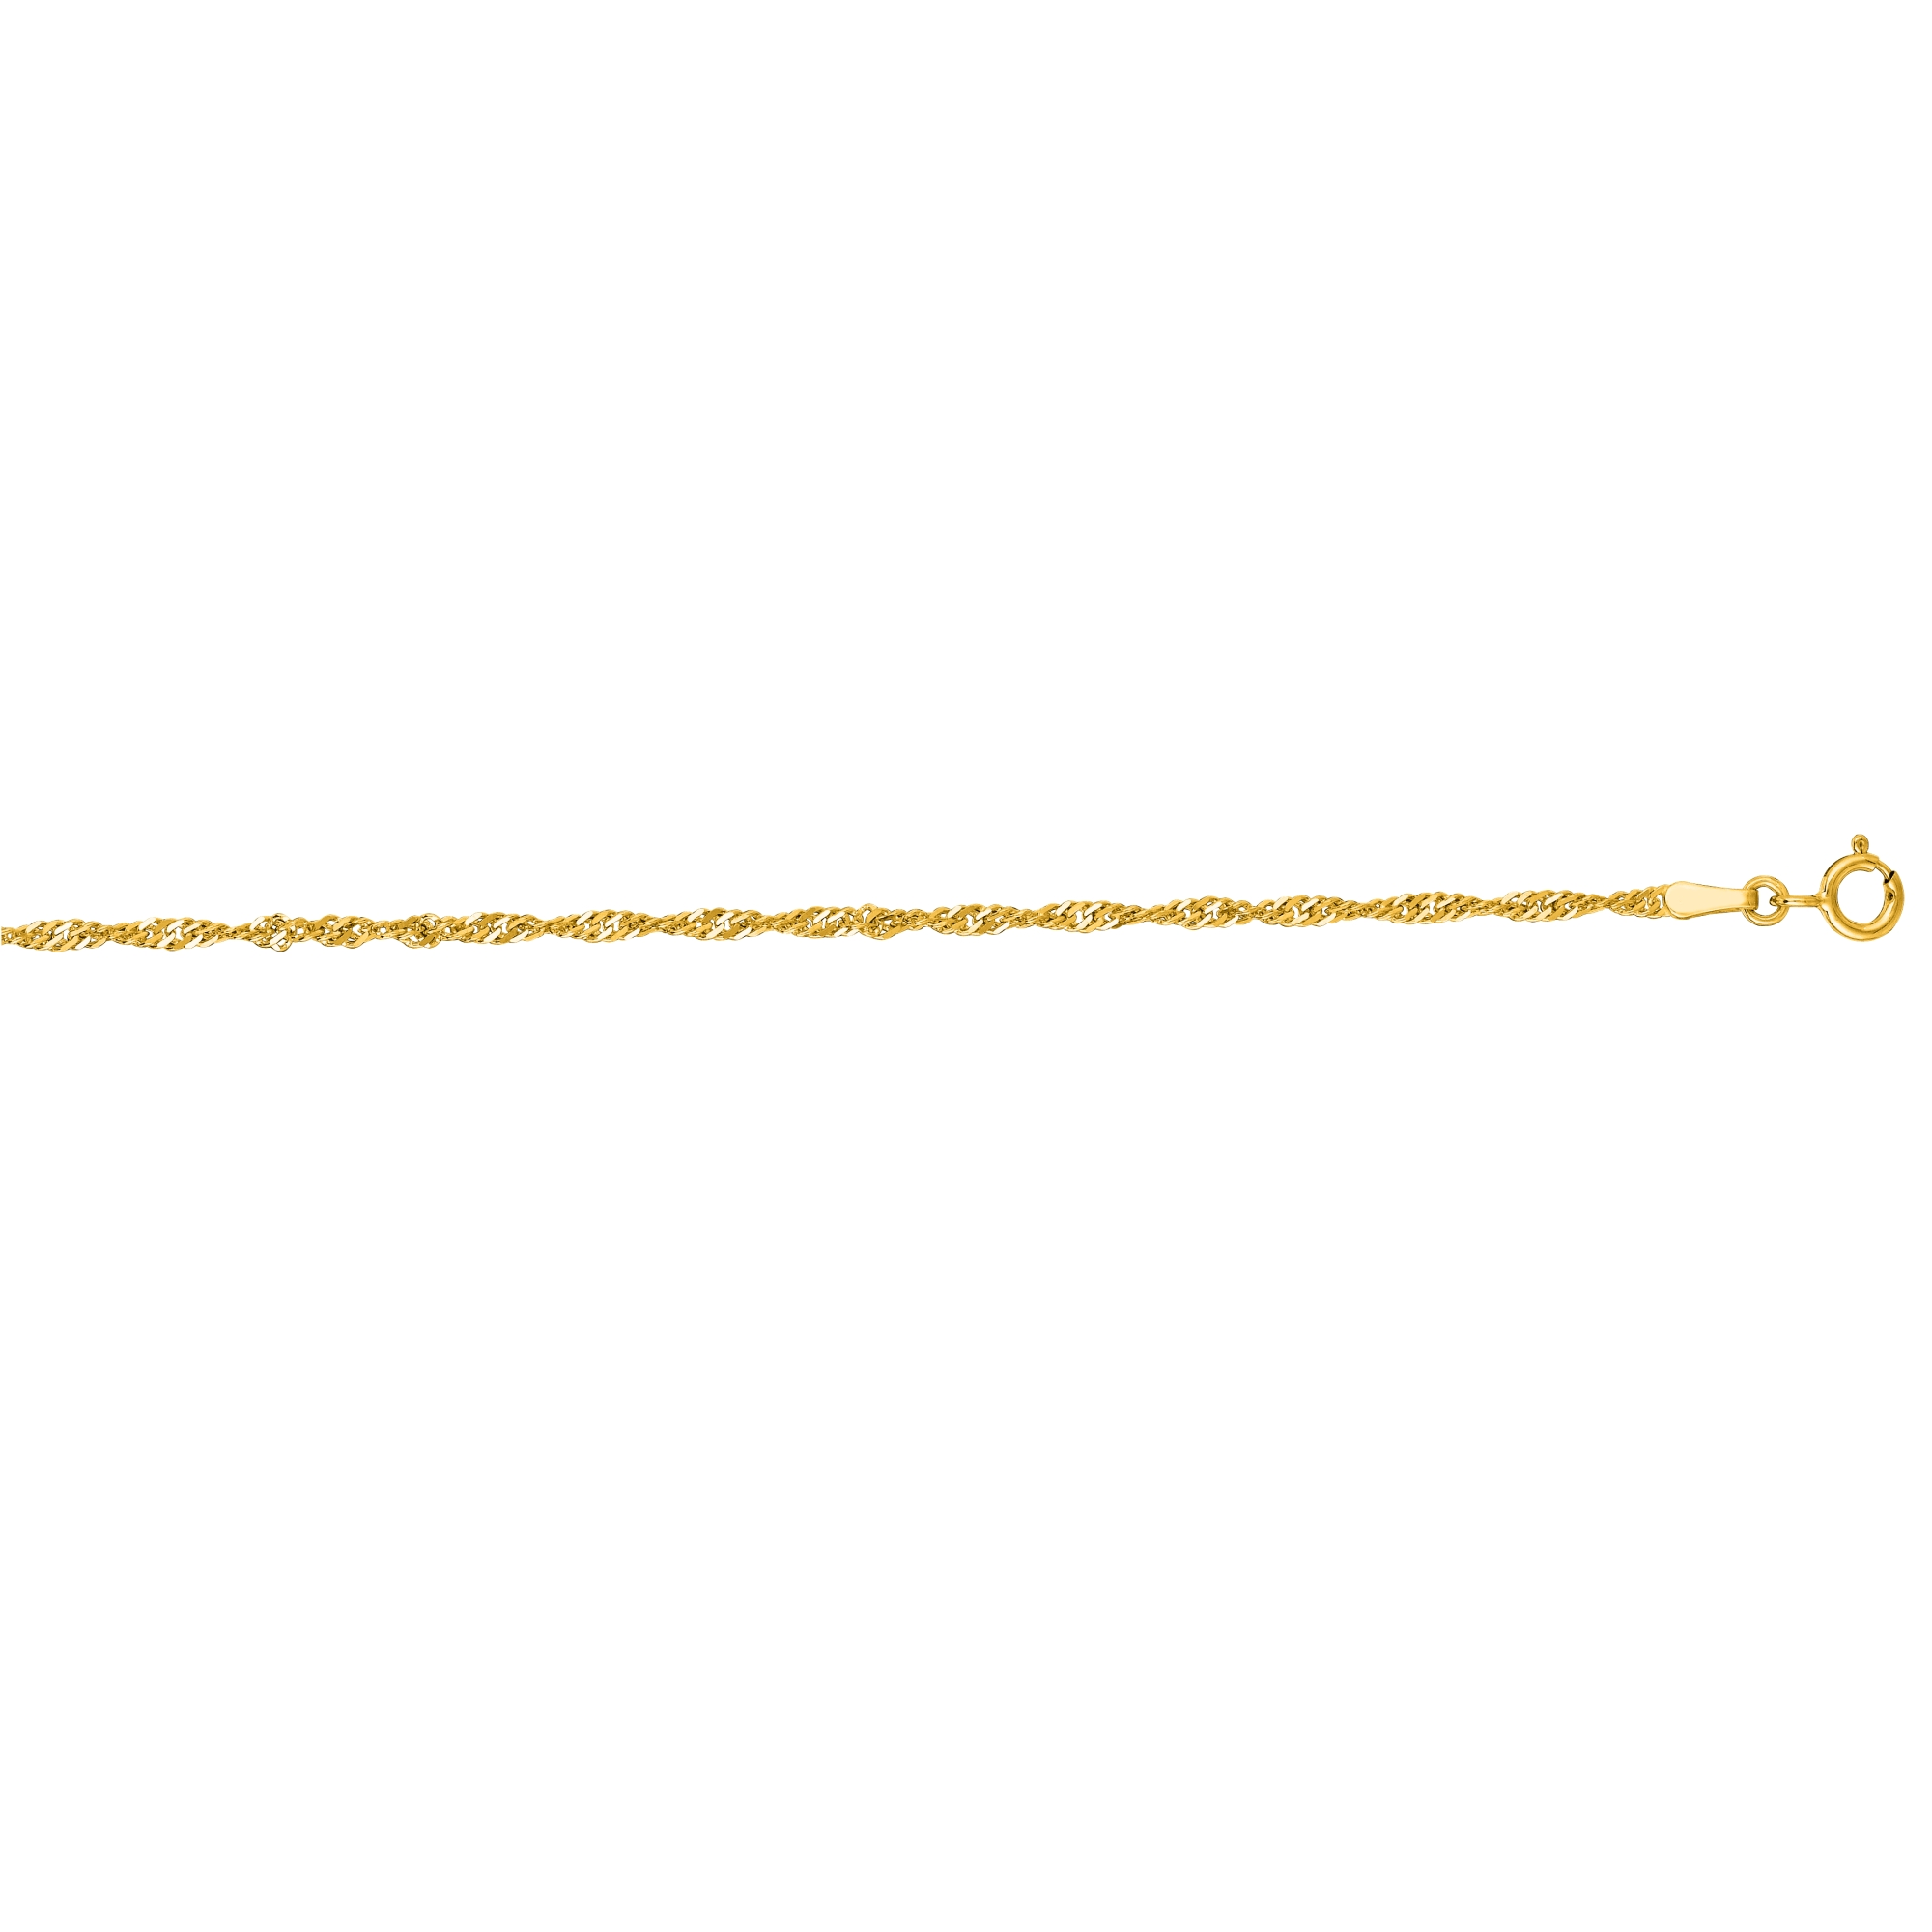 LUXURMAN Solid 14k Gold Singapore Chain For Men & Women 1.7mm Wide Yellow Image